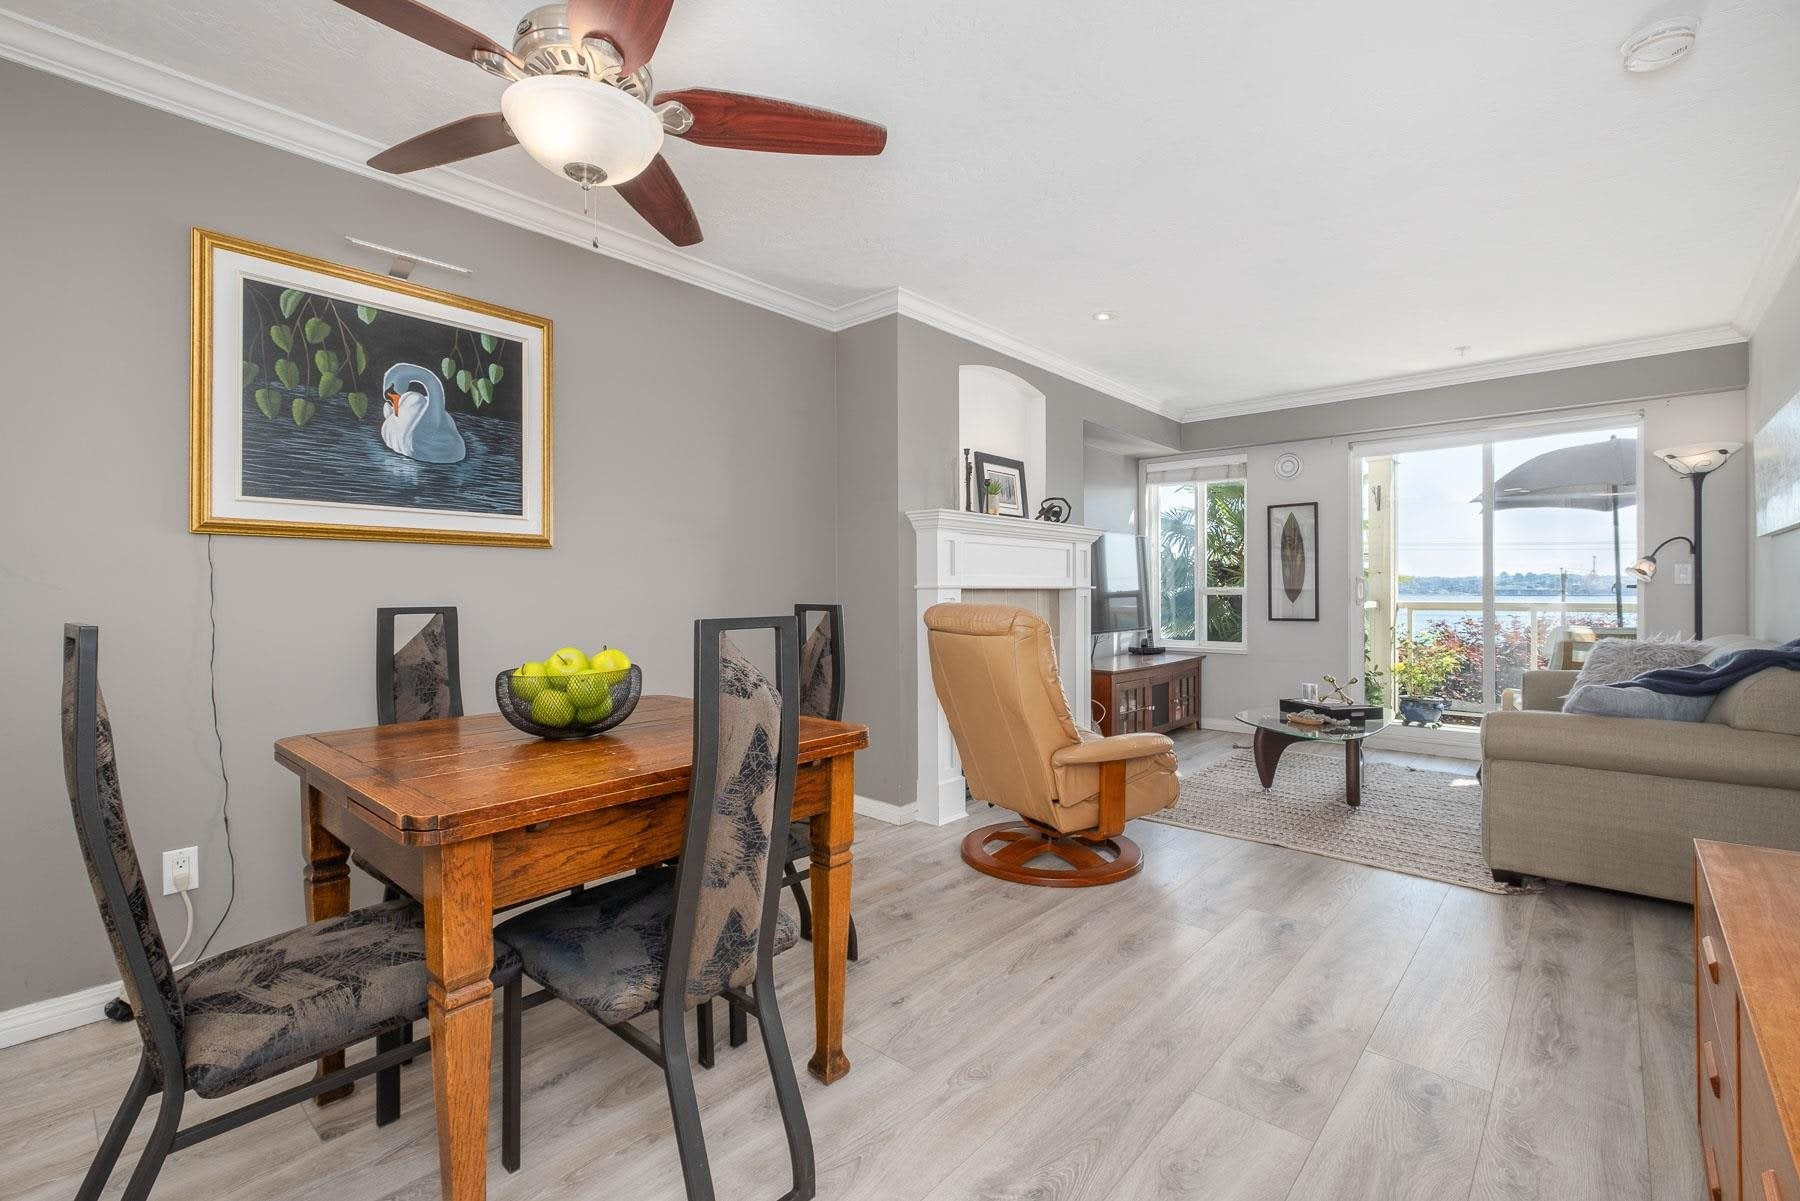 205 333 E 1ST STREET - Lower Lonsdale Apartment/Condo for sale, 1 Bedroom (R2618010) - #7